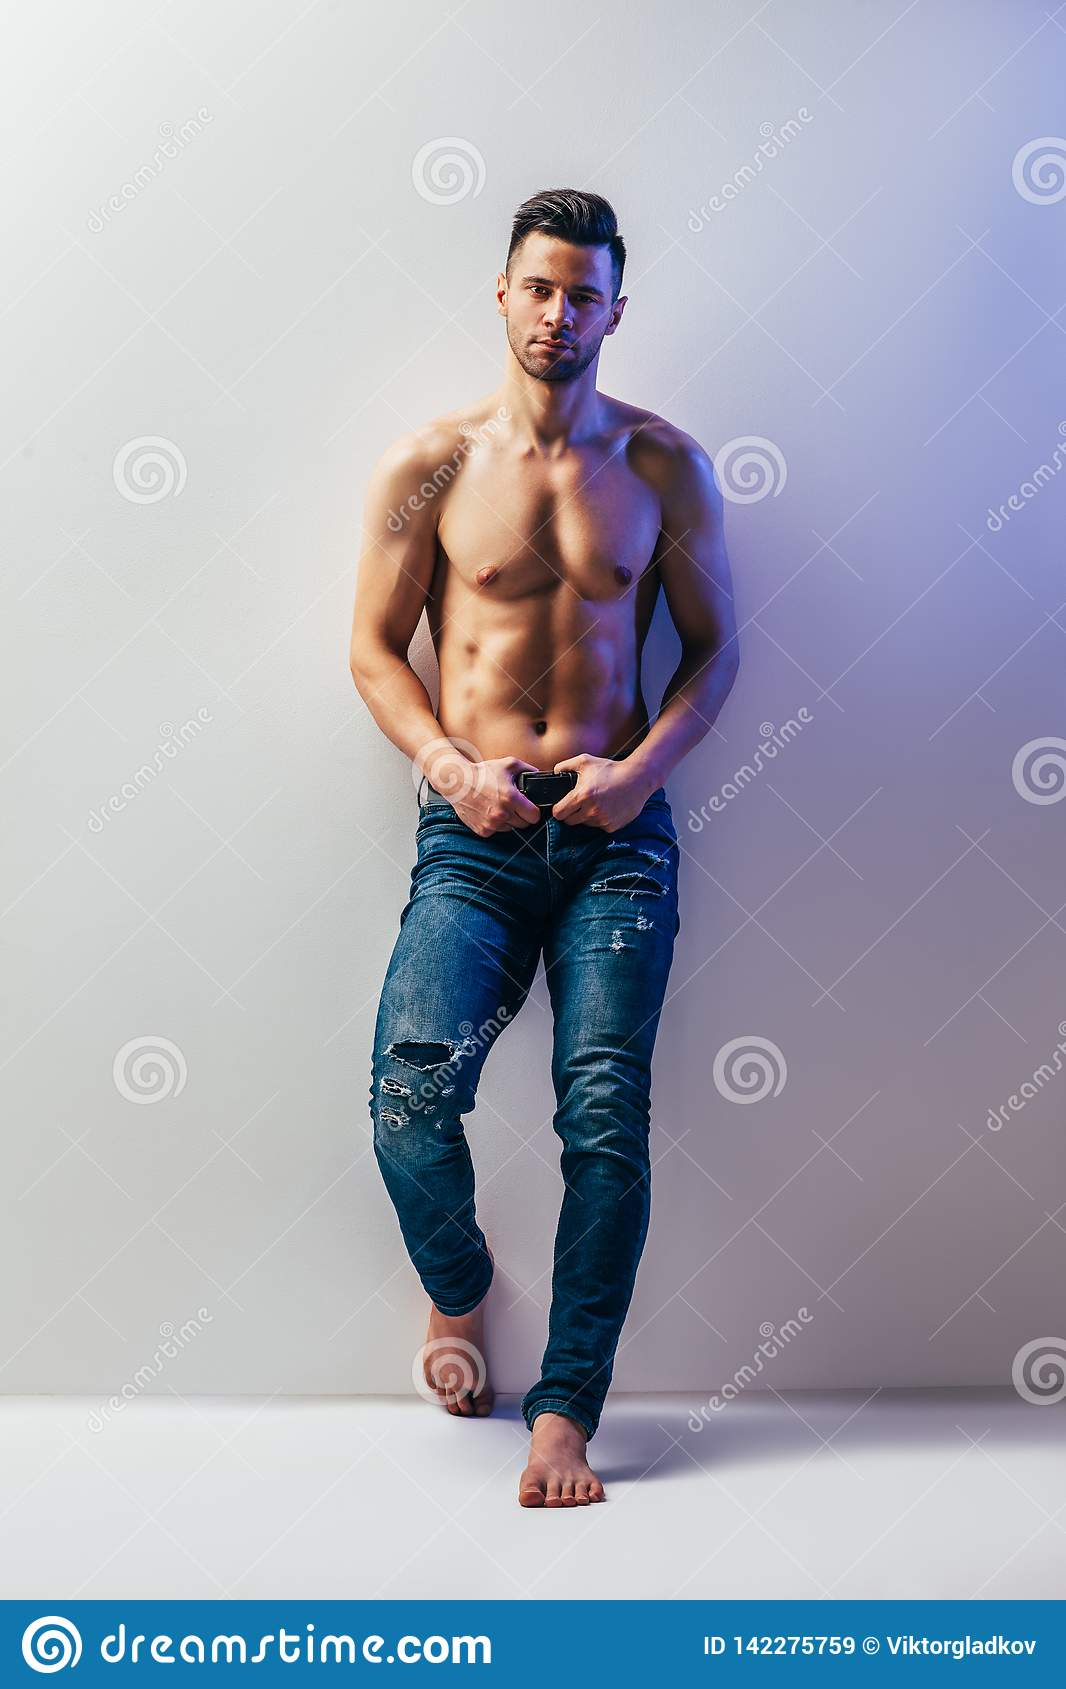 Full length portrait of sexy muscular shirtless man